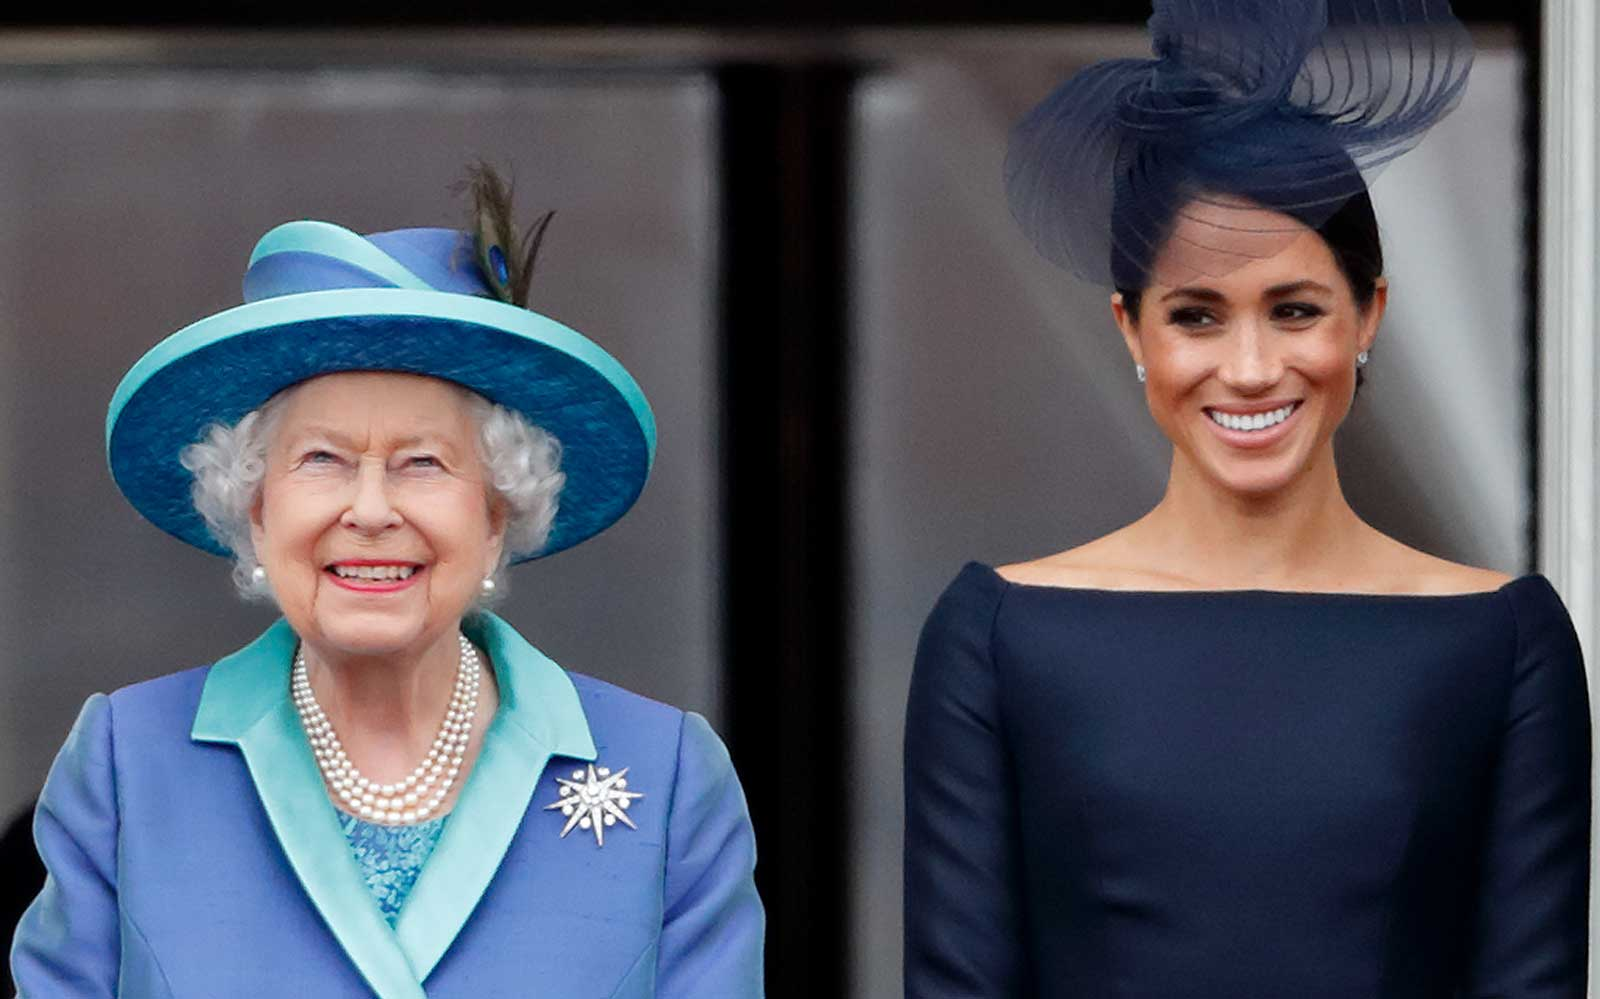 Queen Elizabeth II and Duchess Meghan of Sussex